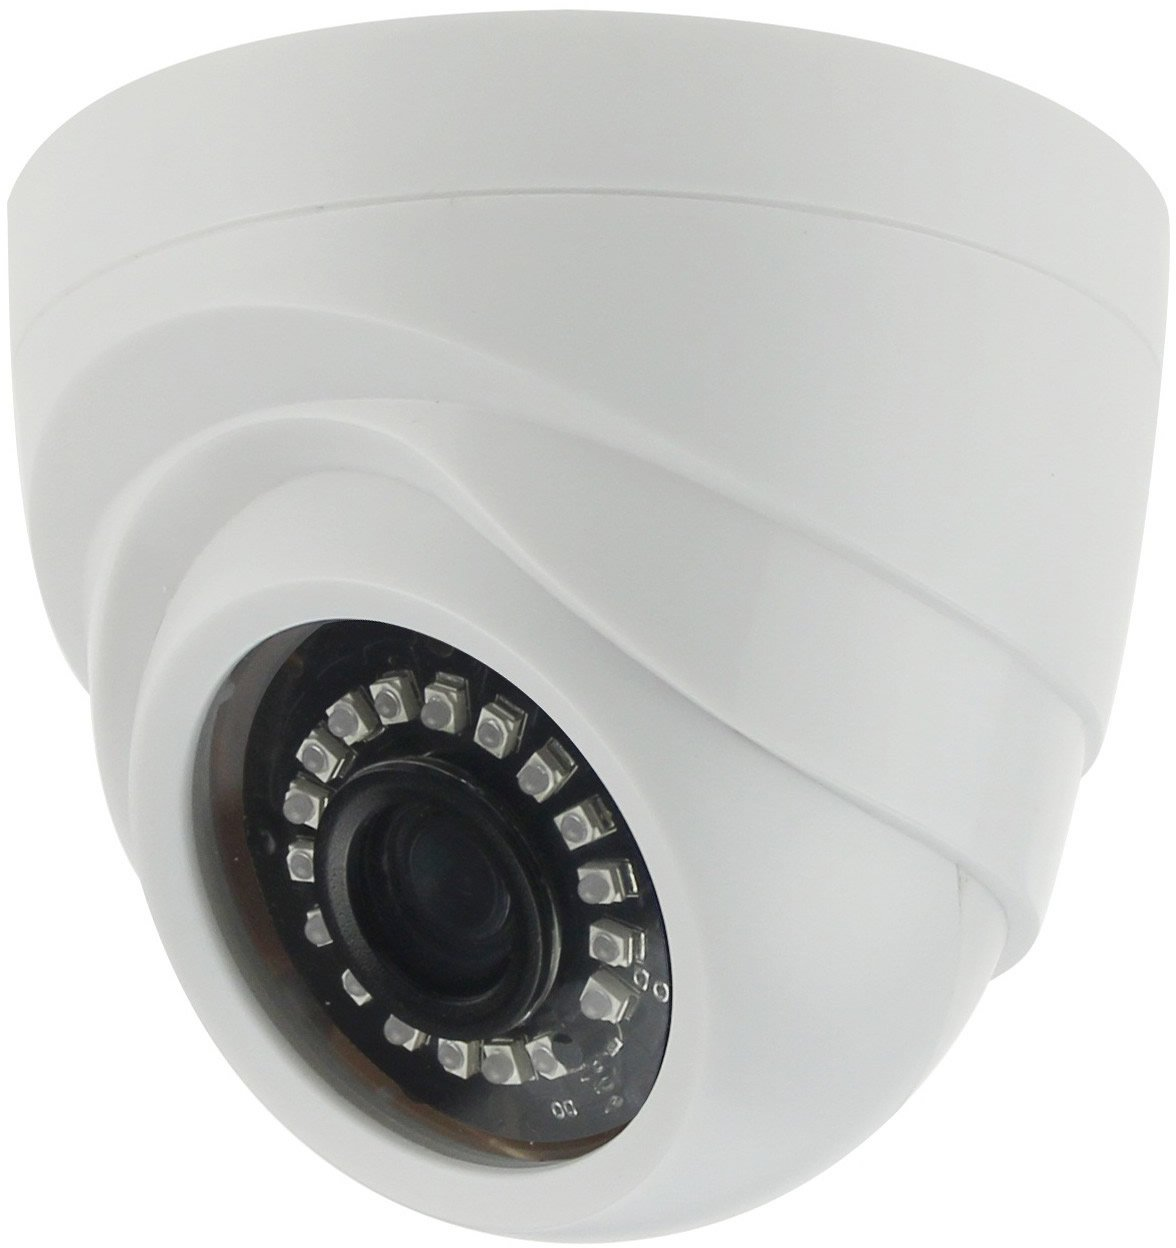 DHTek 2MP 4-in-1 HD-CVI TVI AHD 960H Vandal Dome Security Camera, OEM HAC-HDW1200E 2.8mm Wide Angle Lens, Weatherproof IR Night Vision 1080P Digital WDR CCTV Video Surveillance 2.4MP White 3.6mm